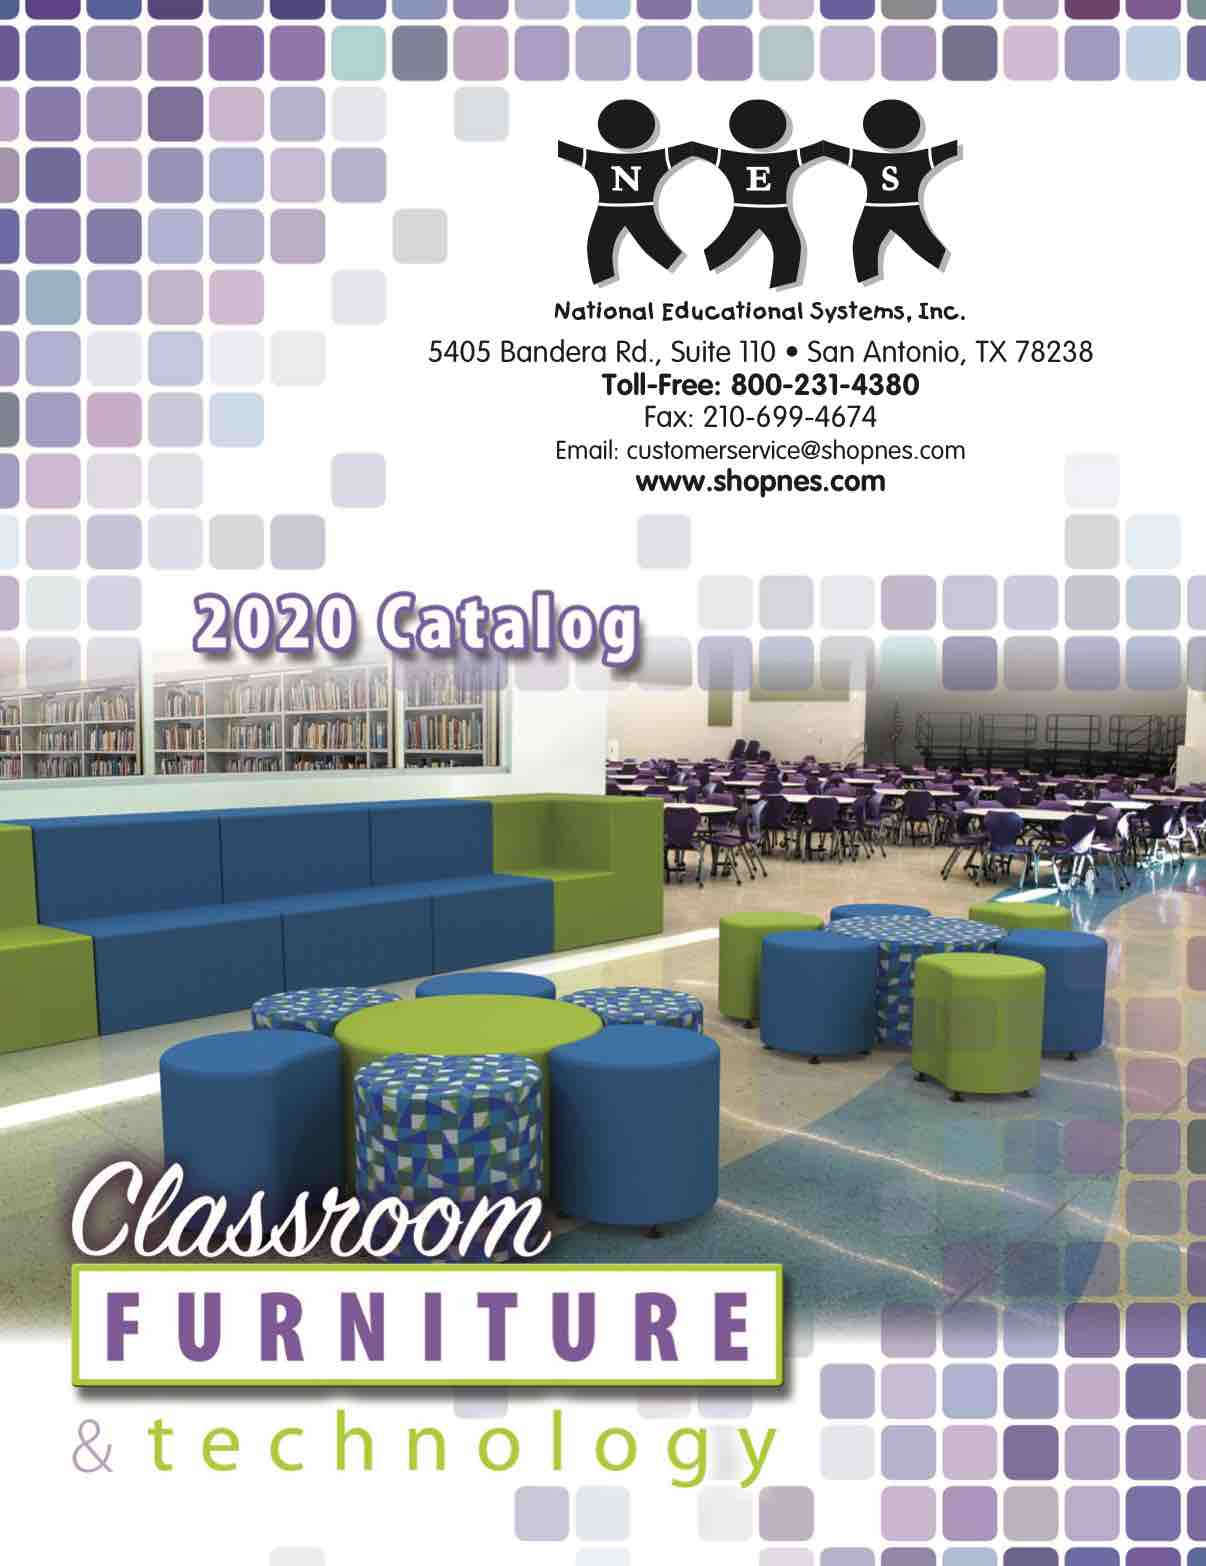 2020 NES Furniture & Technology Catalog